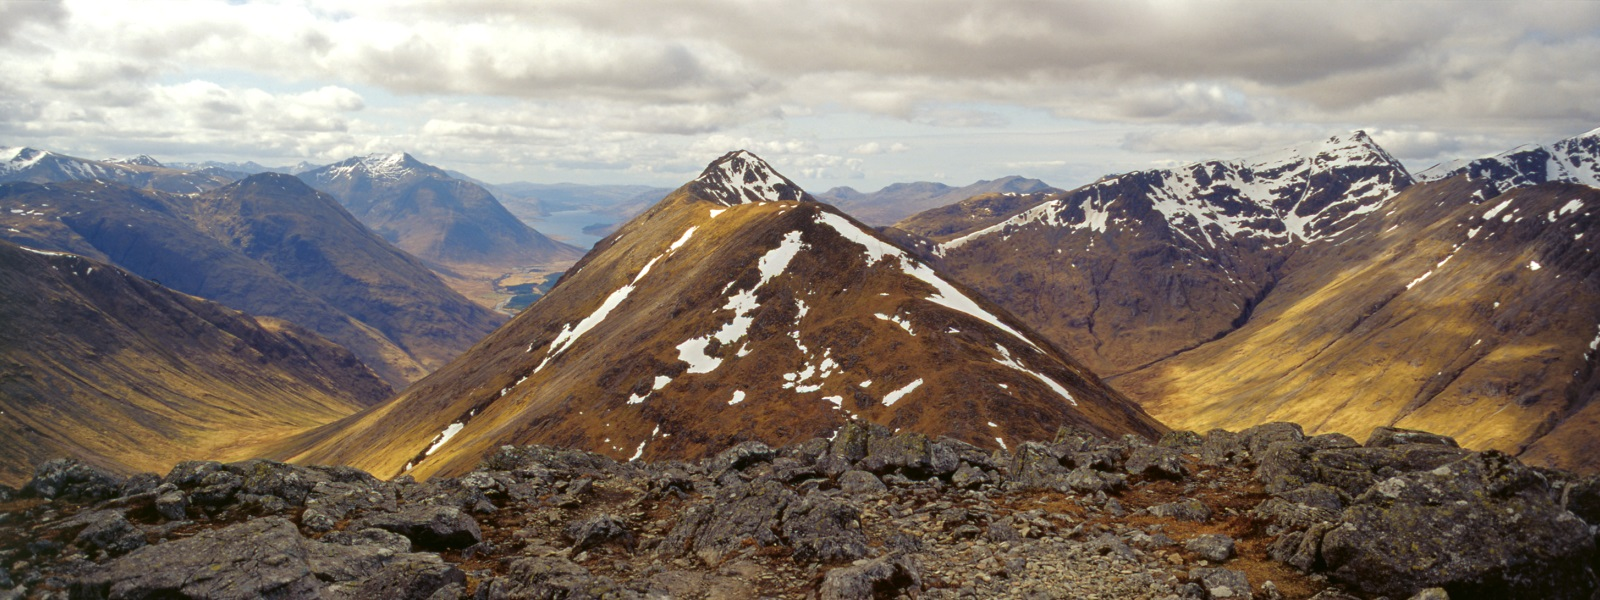 Stob Dubh from Stob Coire Raineach, Glencoe National Nature Reserve